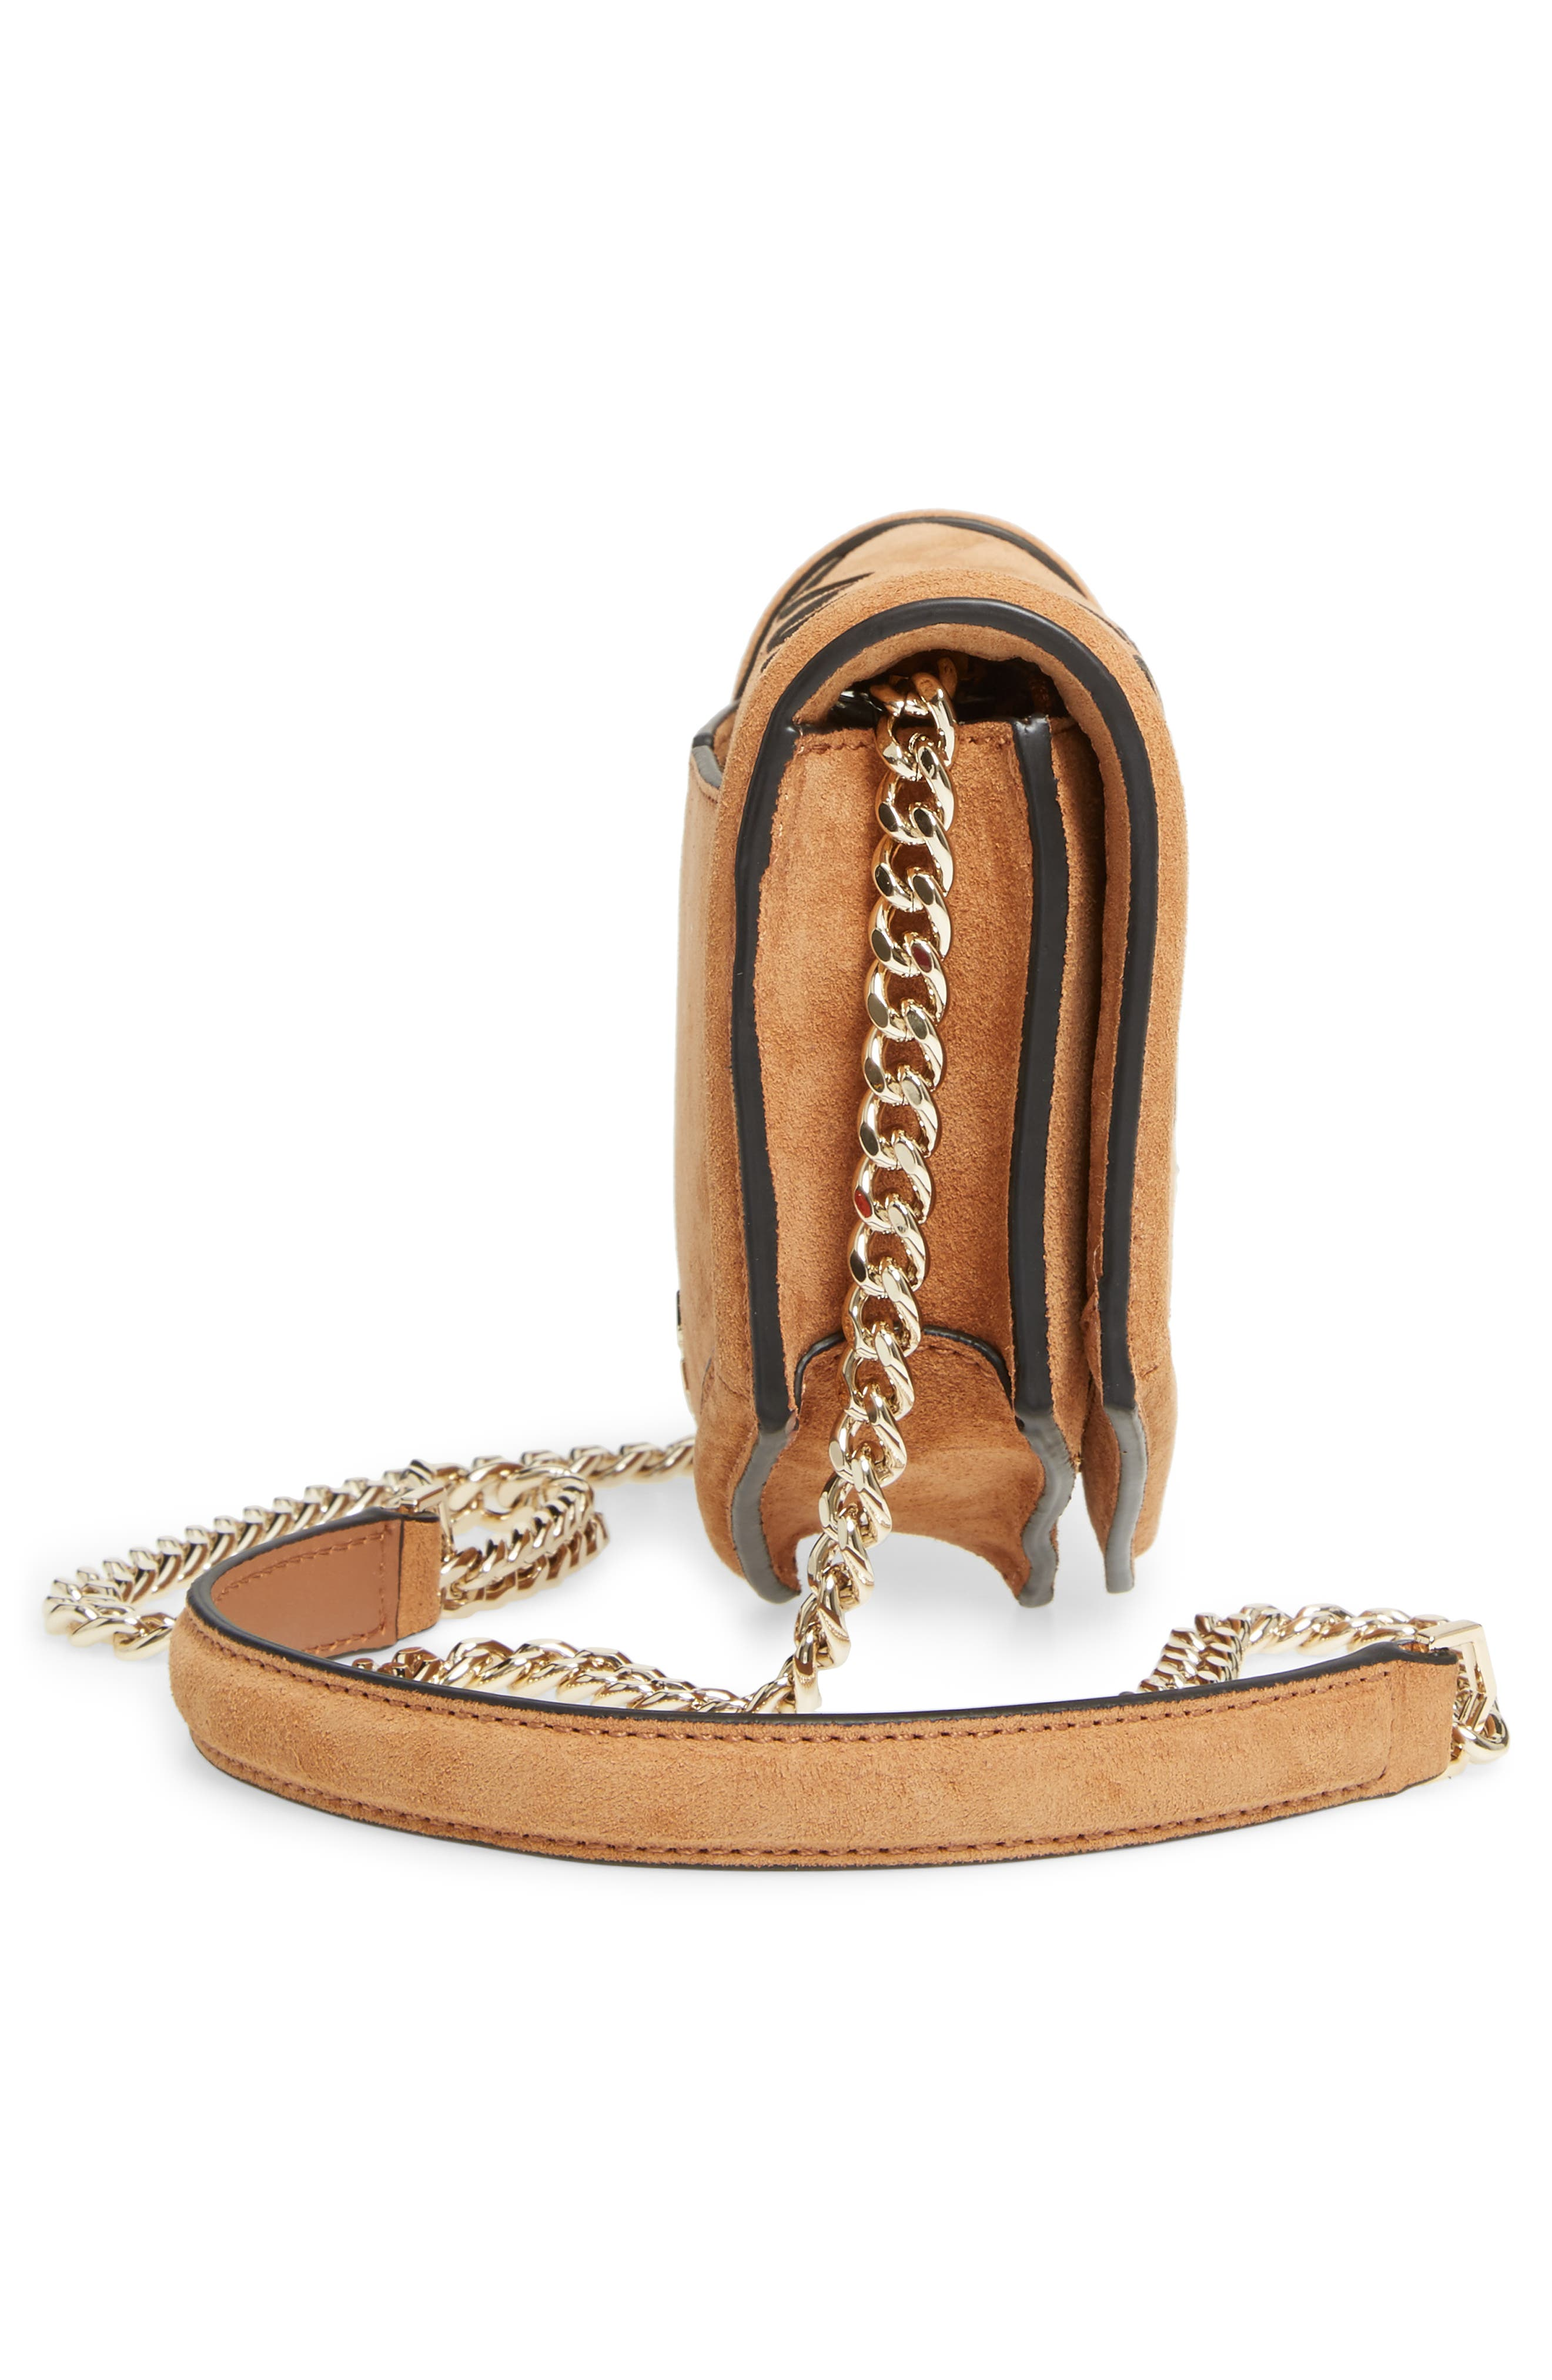 Jaunt Woven Calfskin Suede Wallet on a Chain,                             Alternate thumbnail 5, color,                             200